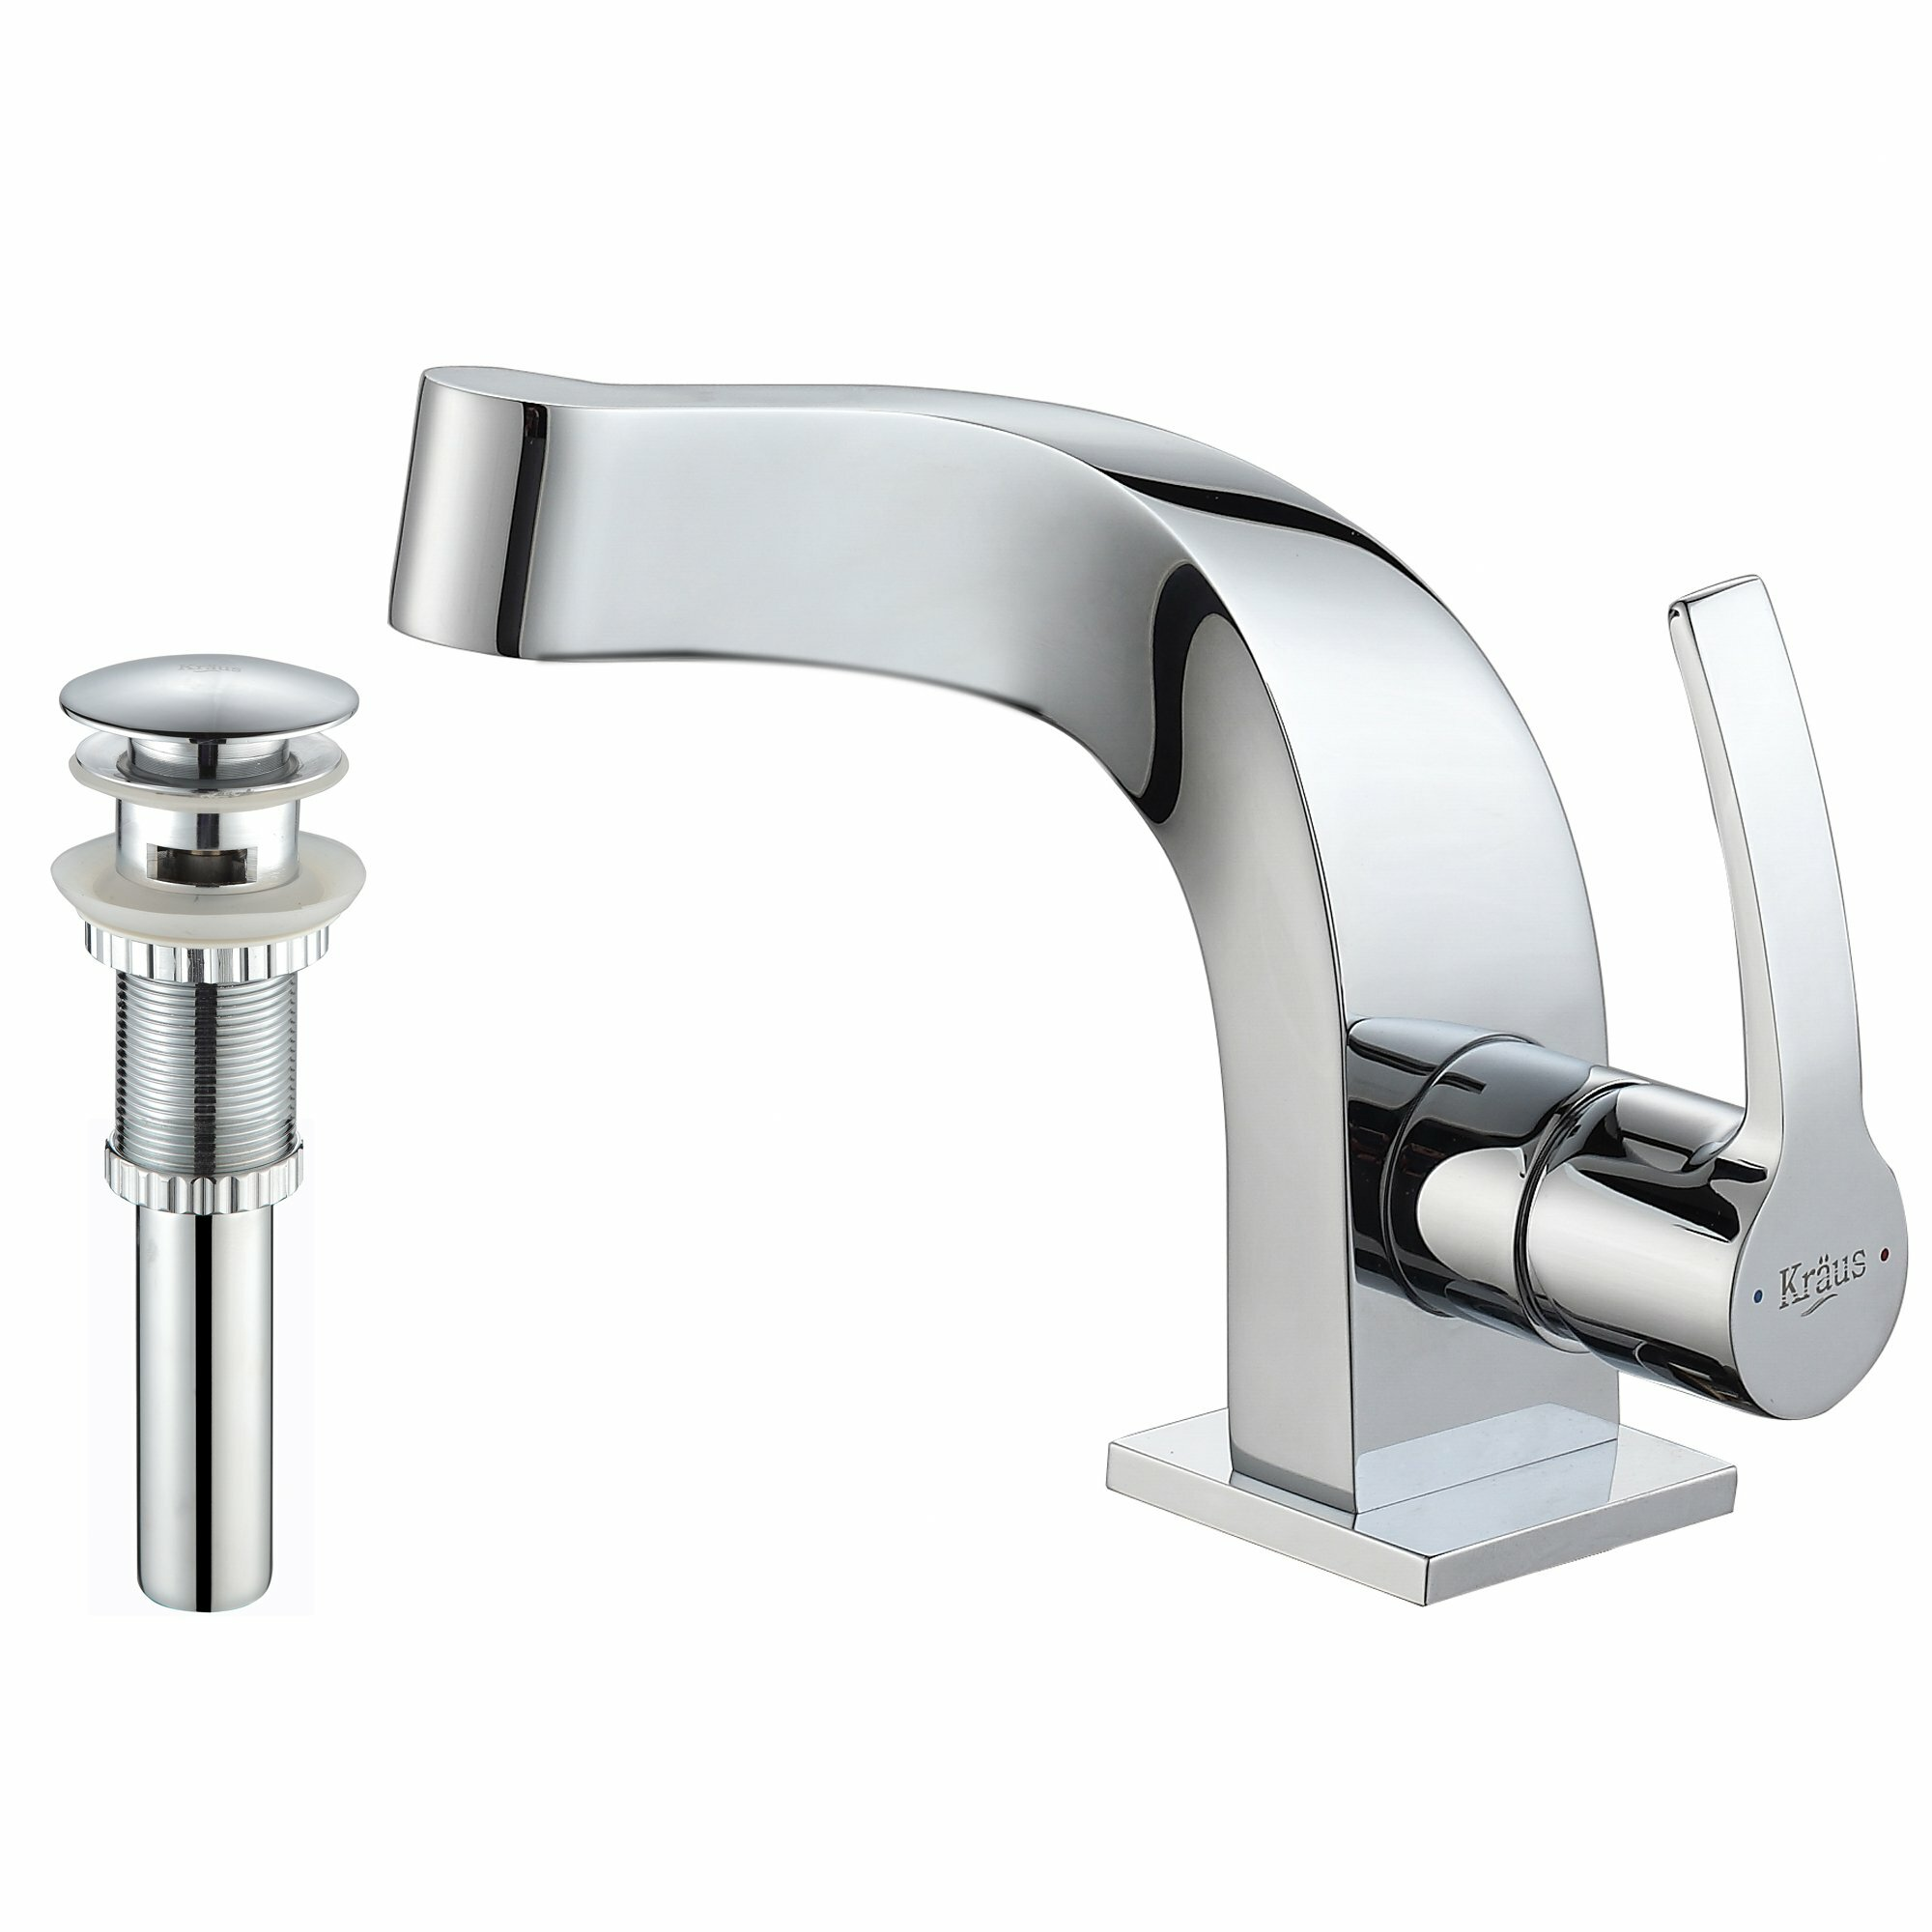 Kraus Typhon Single Hole Bathroom Faucet with Pop Up Drain & Reviews ...